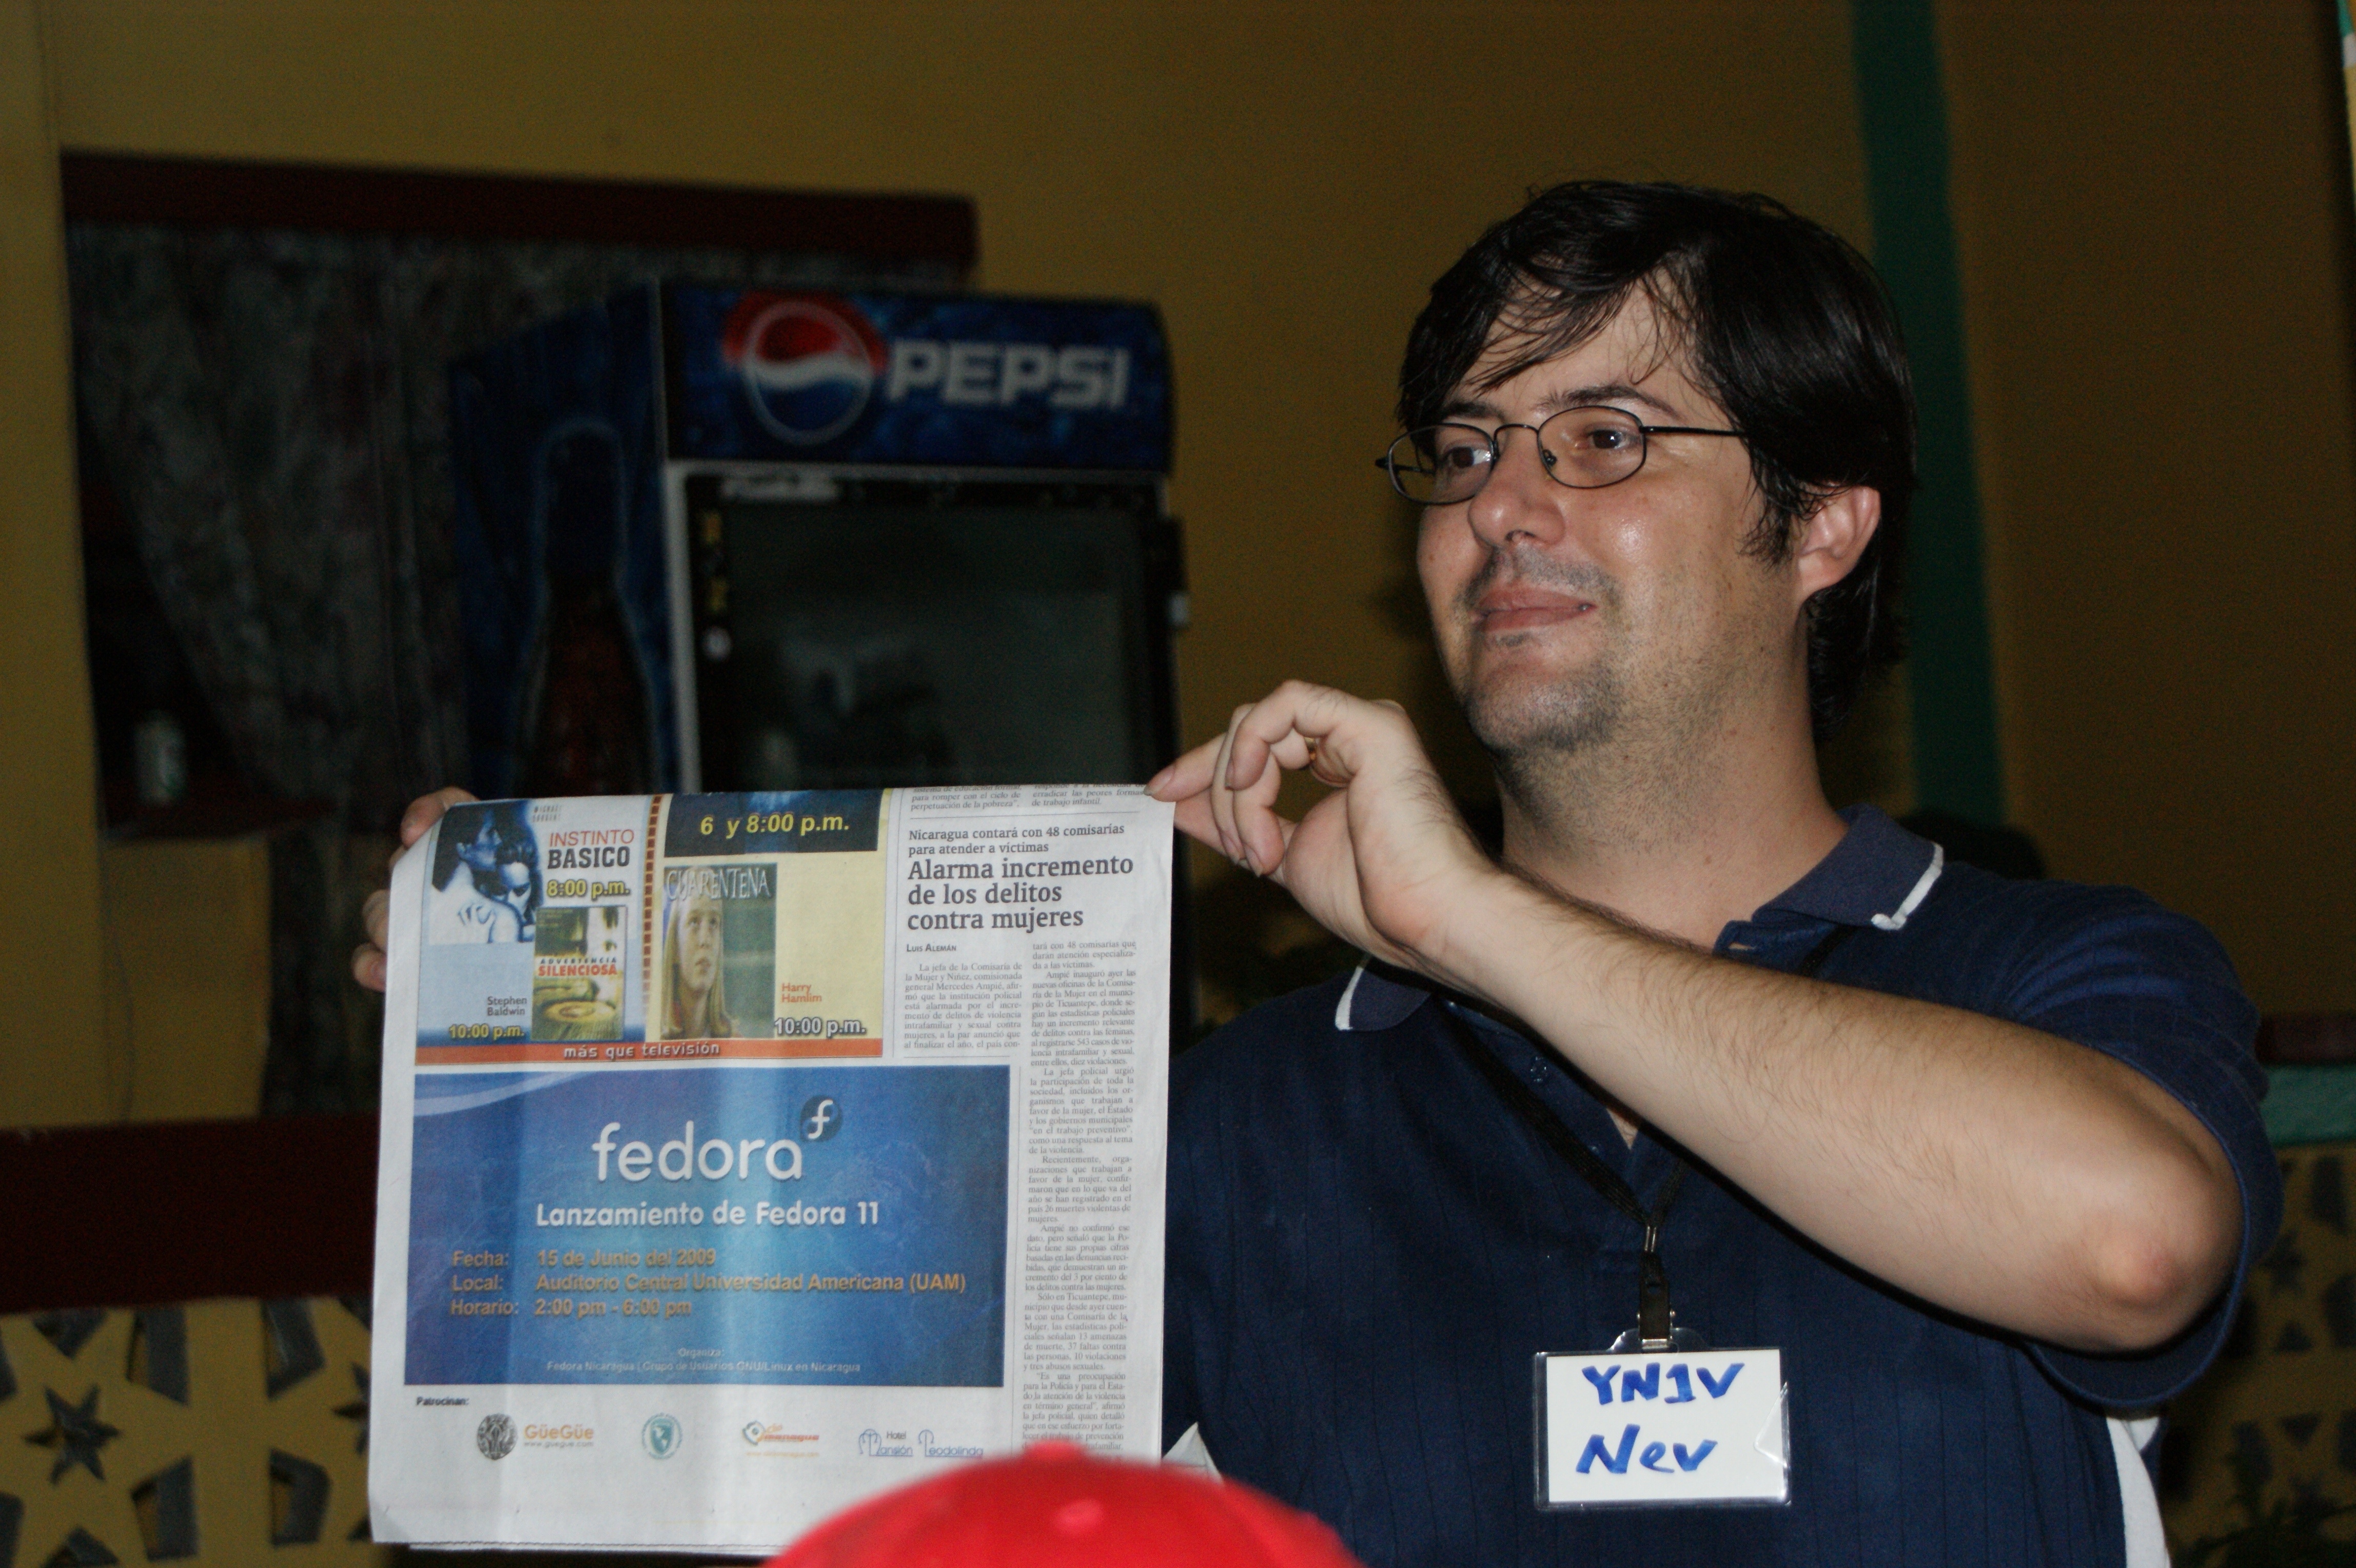 Neville shows Fedora 11 mentioned in the local press